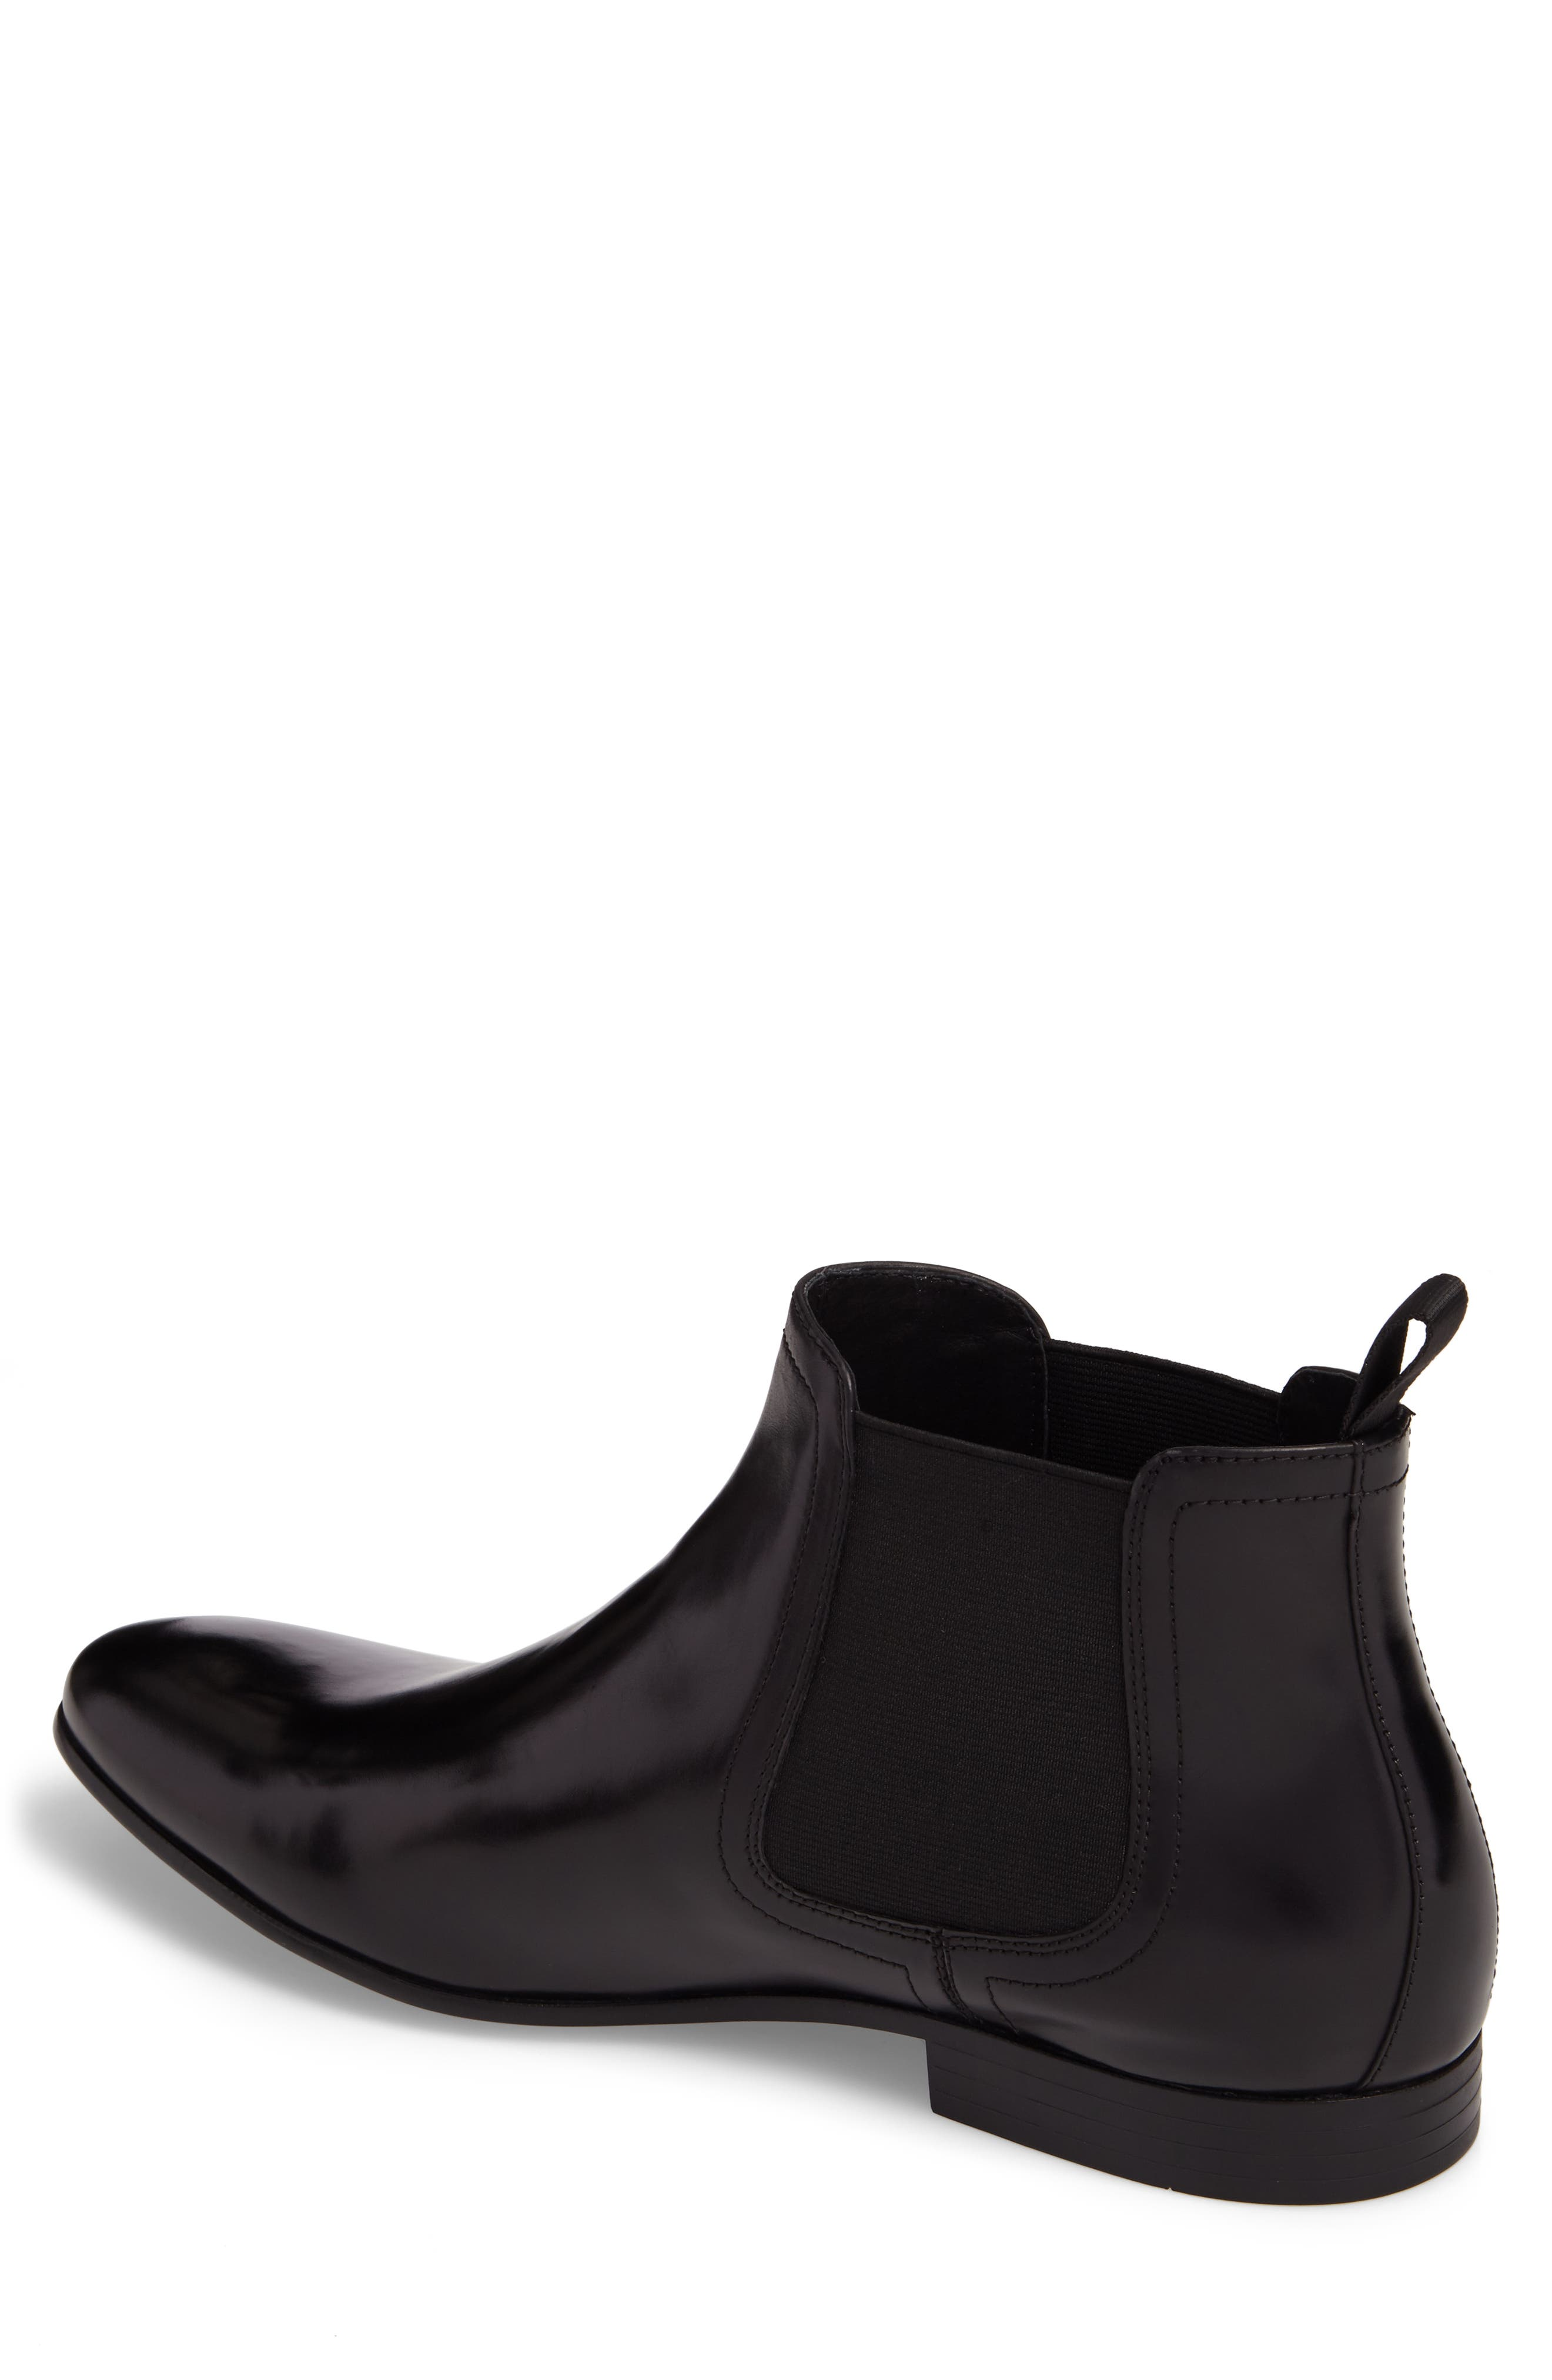 Chelsea Boot,                             Alternate thumbnail 2, color,                             Black Leather